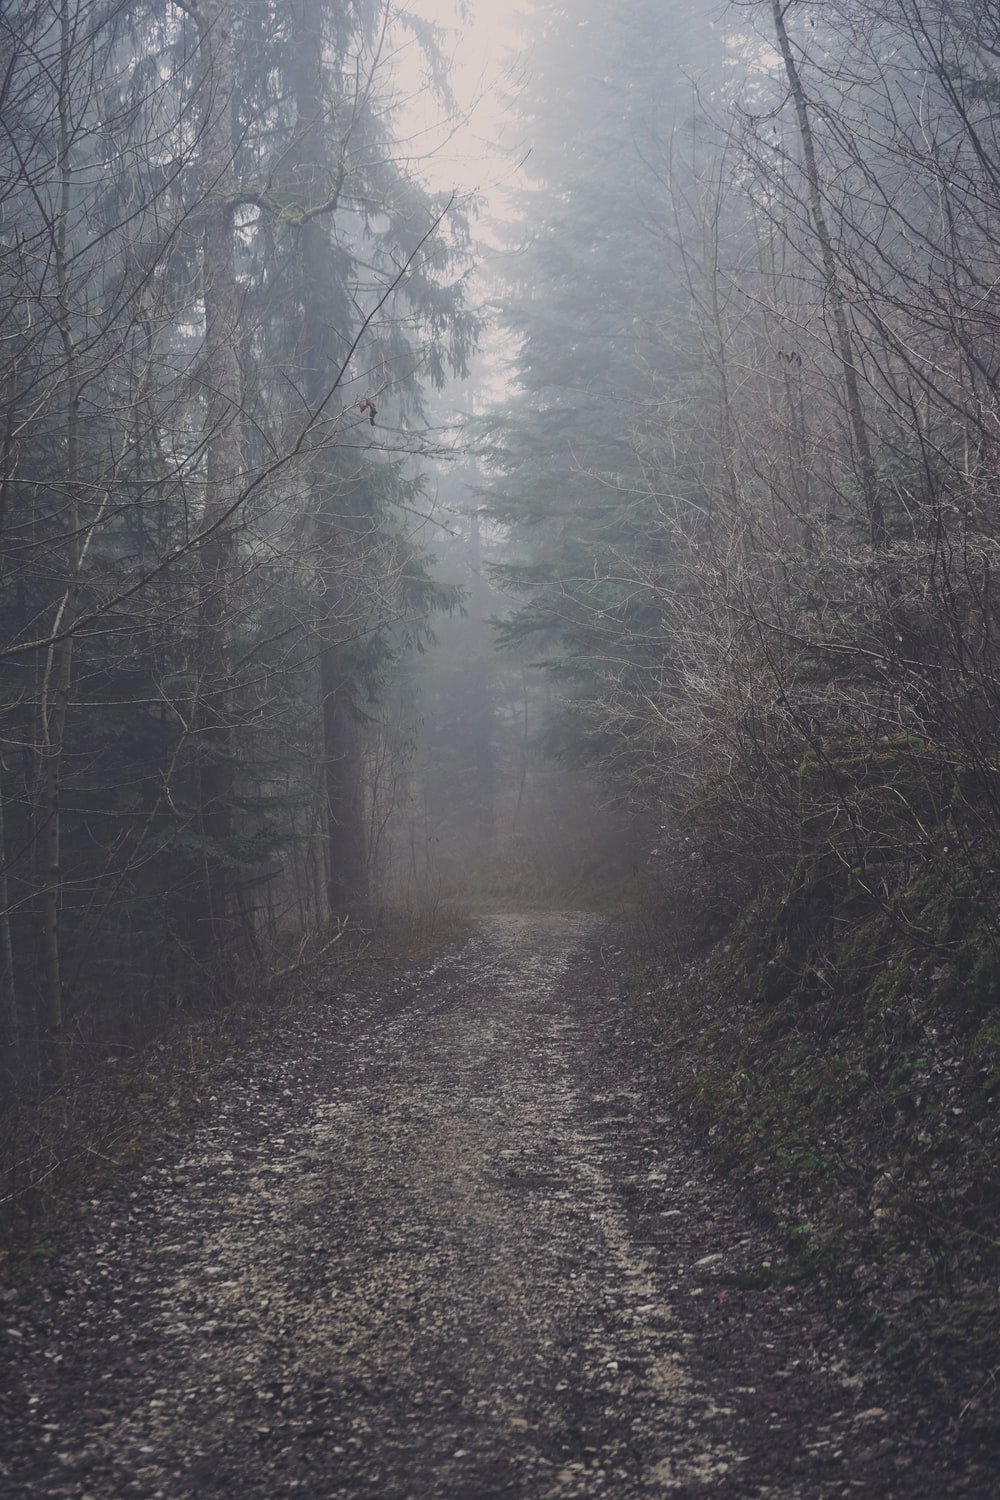 grey fog covering dirt trail in the middle of woods